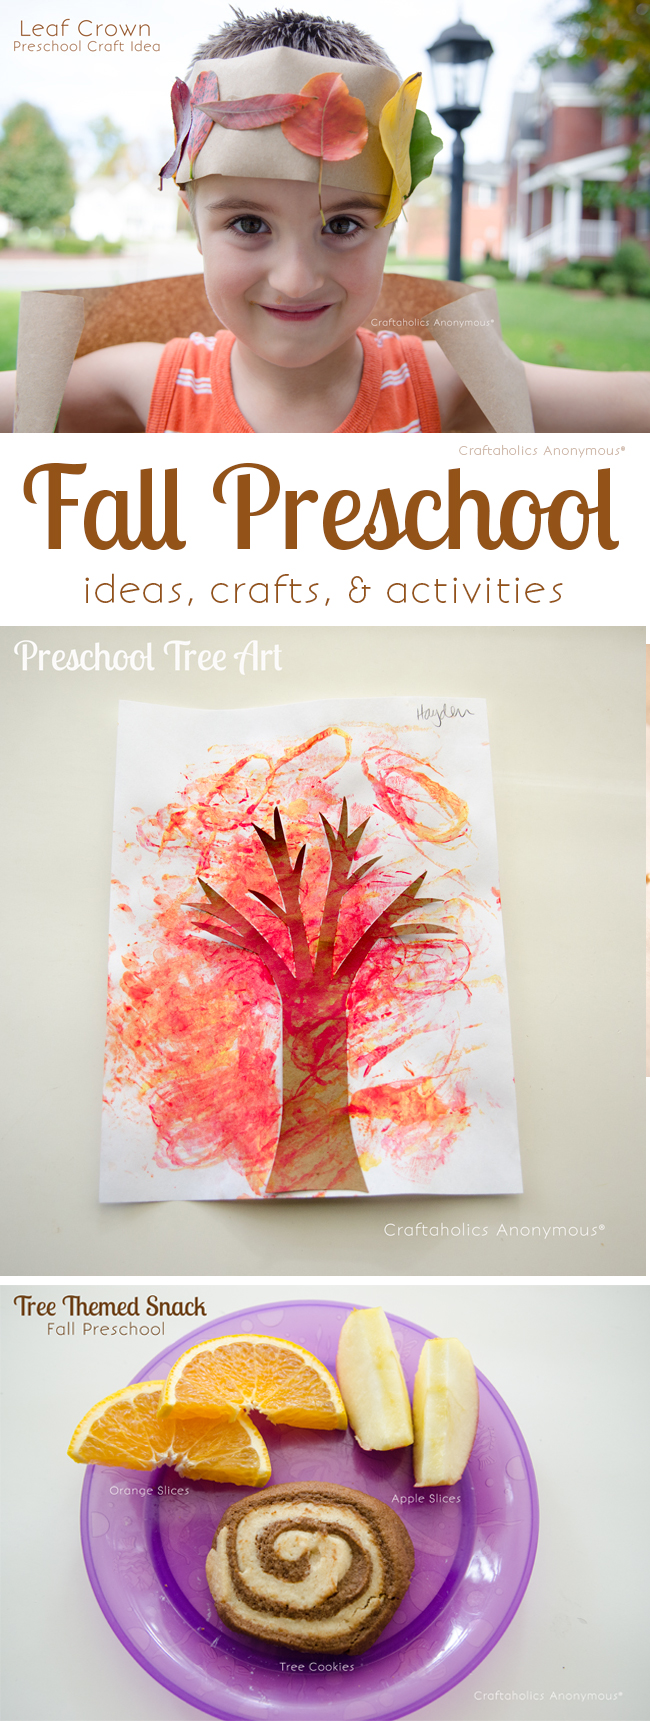 Tree Themed Preschool for Fall. Crafts, Snack, and Activity ideas!